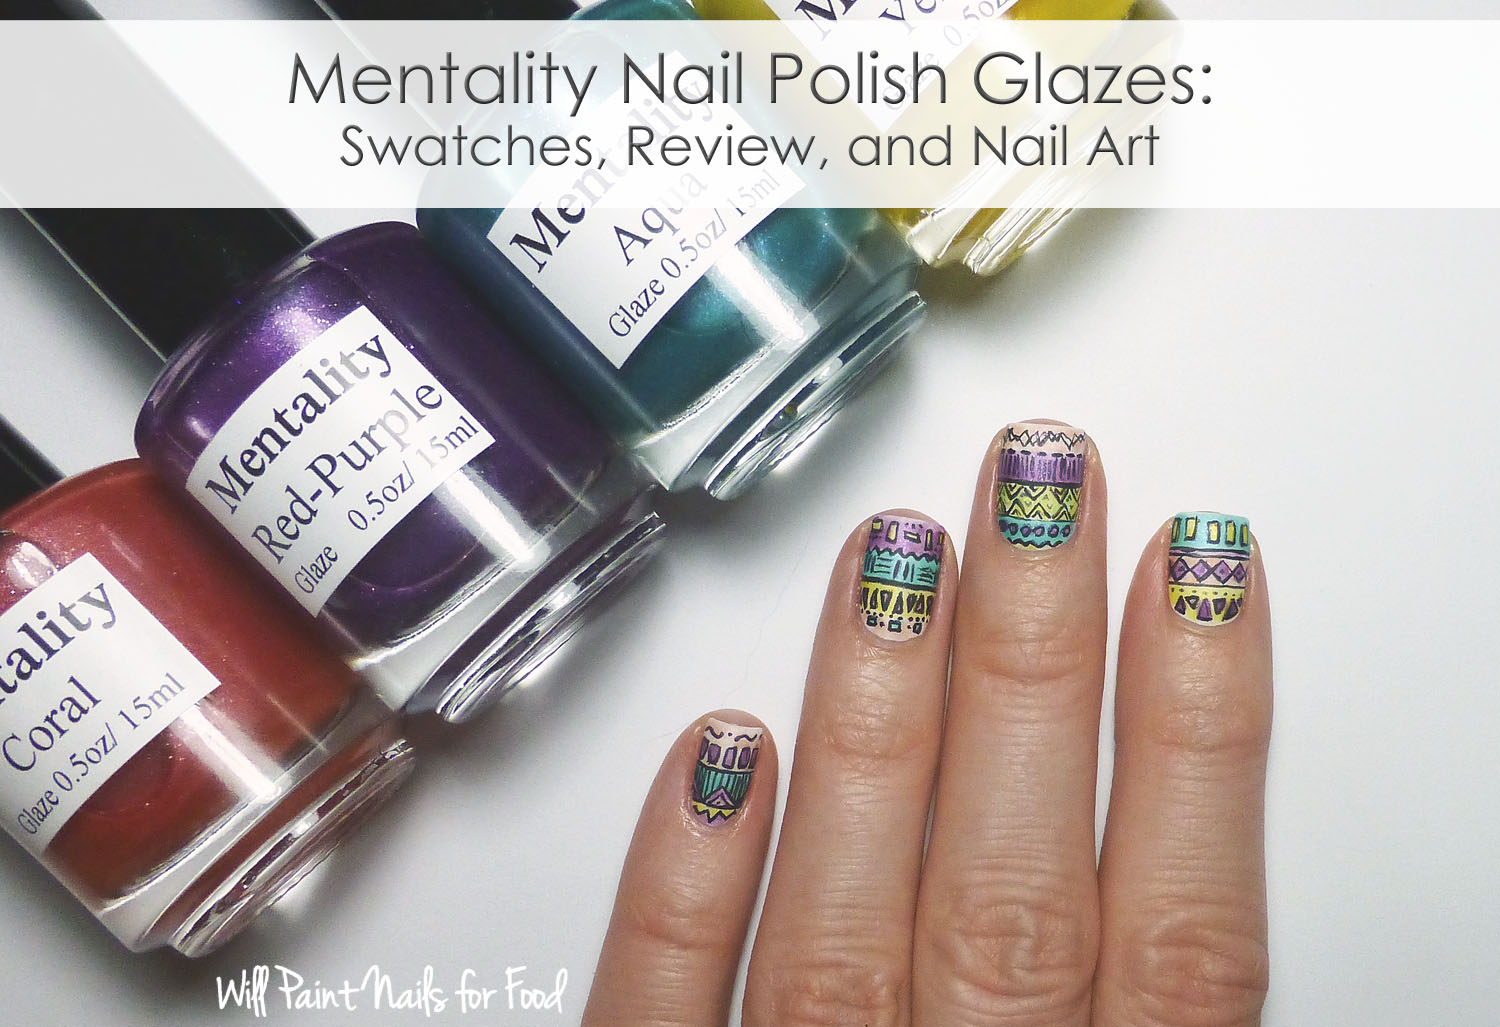 Mentality Nail Polish Glazes: Swatches, Review and Nail Art